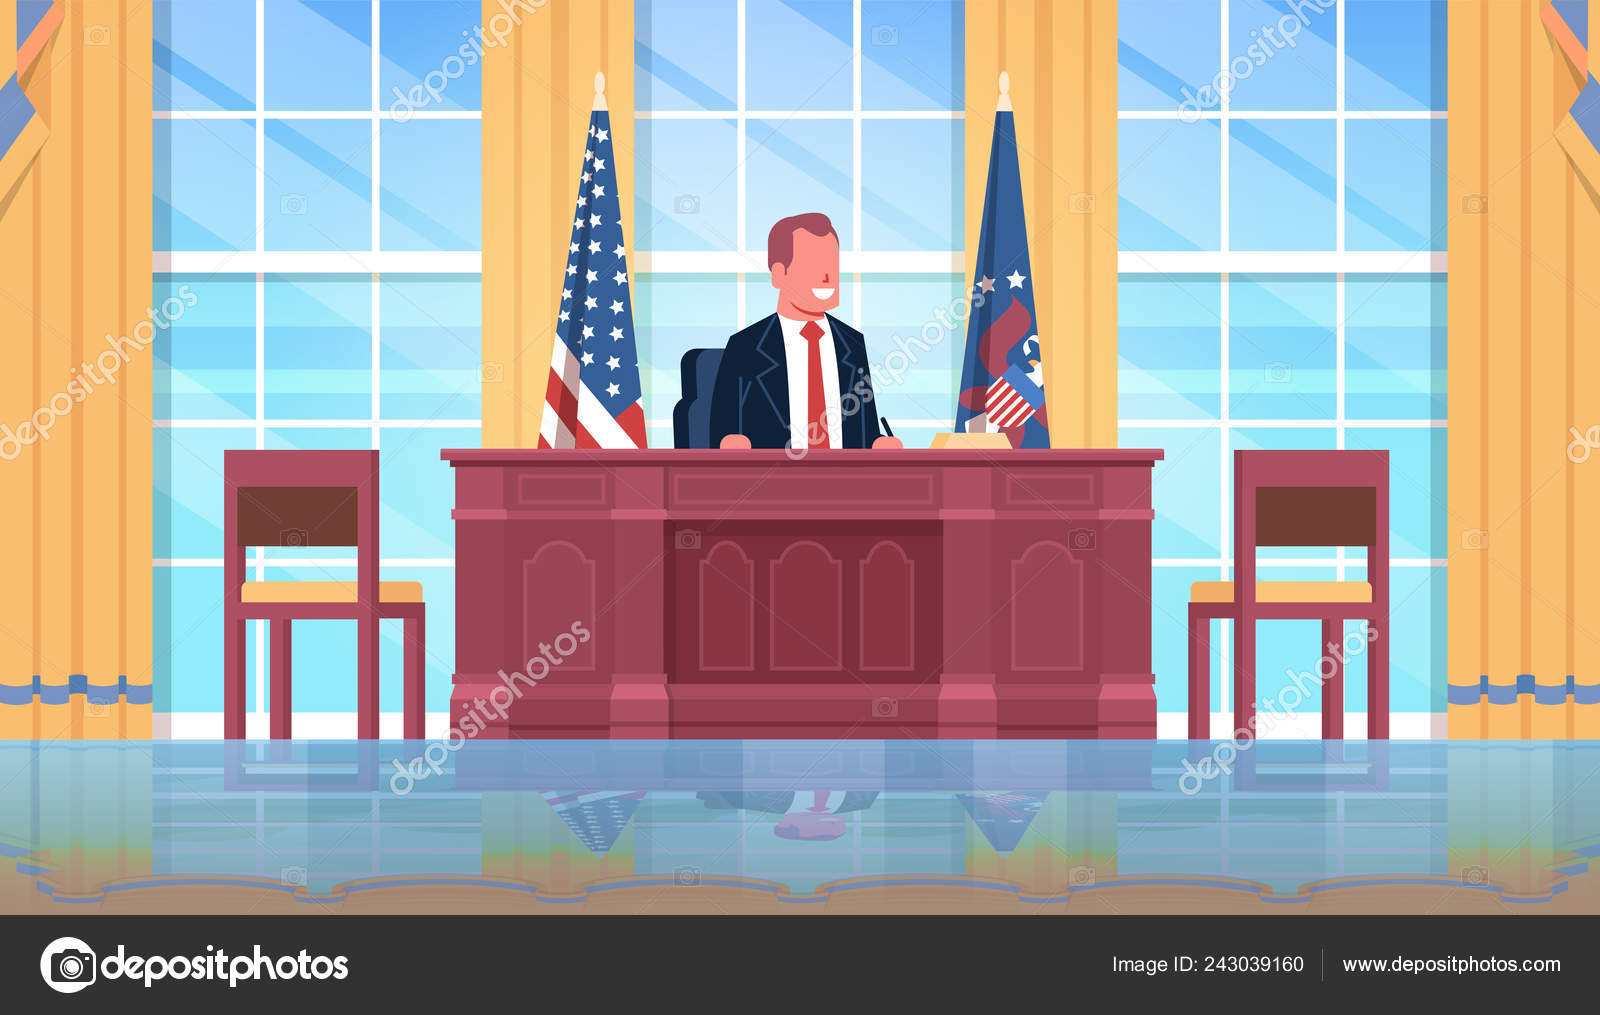 President Sitting Workplace Wooden Furniture Usa National Flag Oval Office White House Cabinet Interior Male Leader Of The United States Portrait Flat Horizontal Stock Vector C Mast3r 243039160